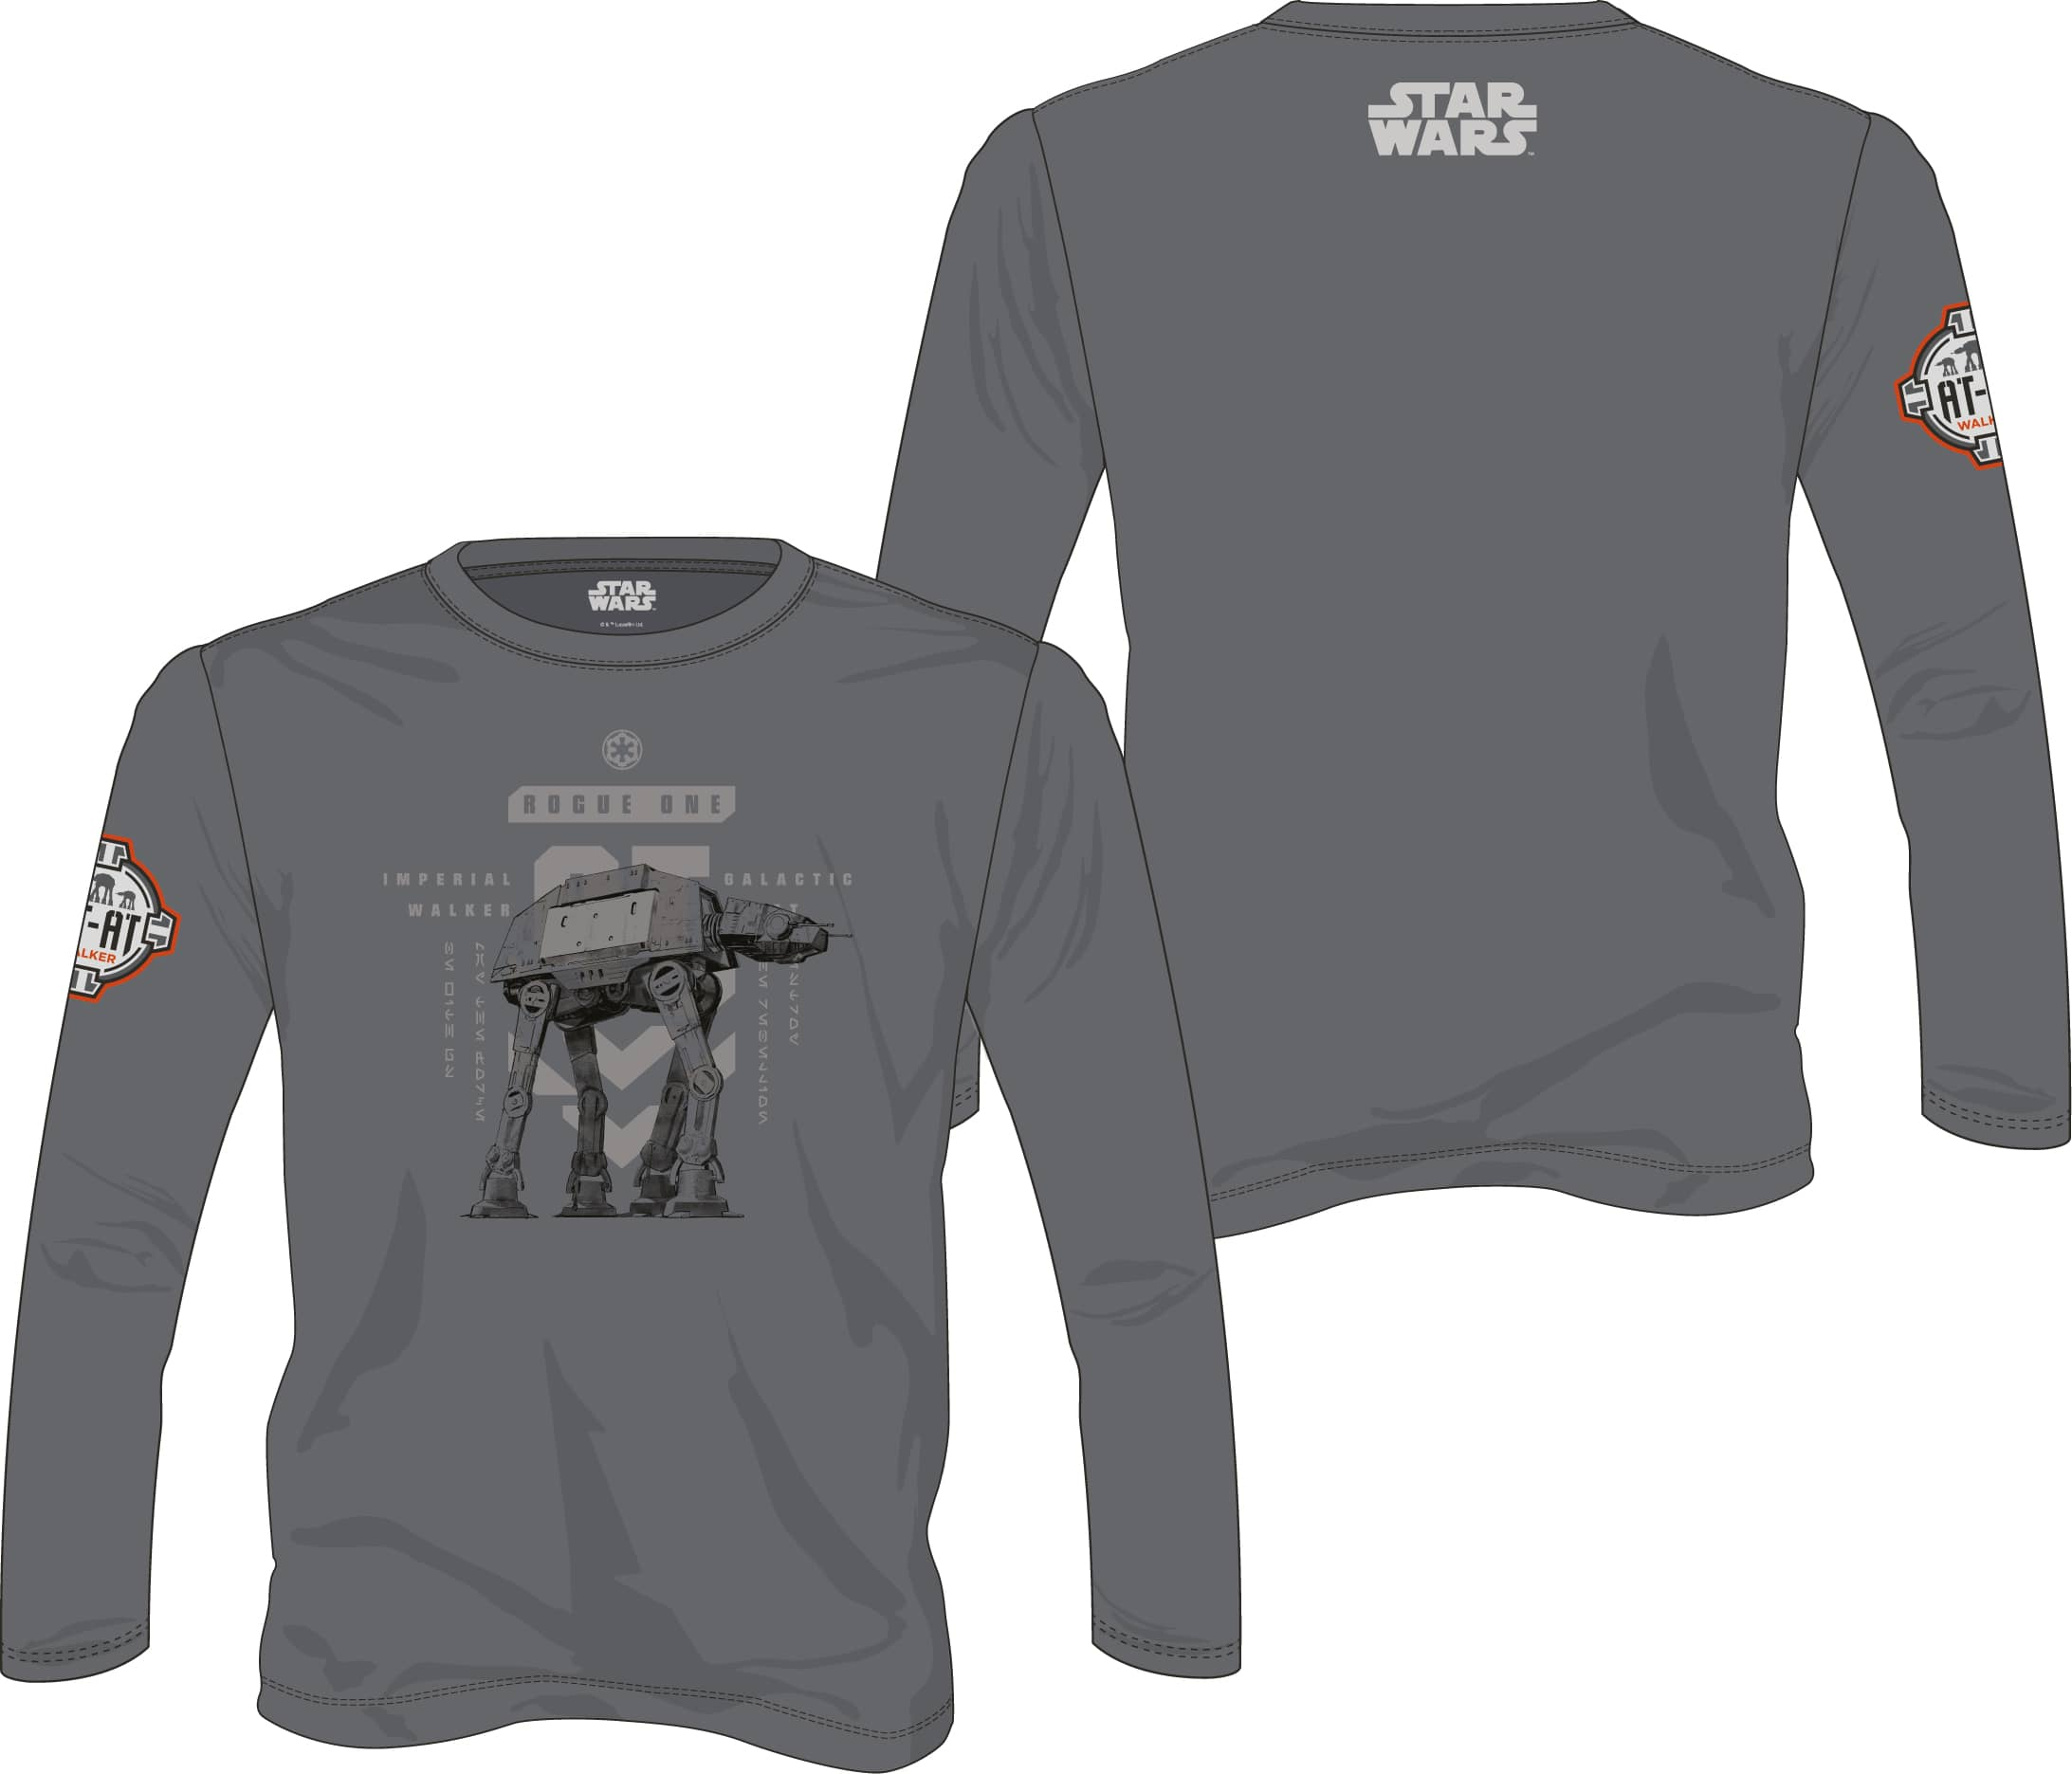 AT-AT CAMINANTE M/LARGA CAMISETA GRIS CHICO T-L STAR WARS ROGUE ONE